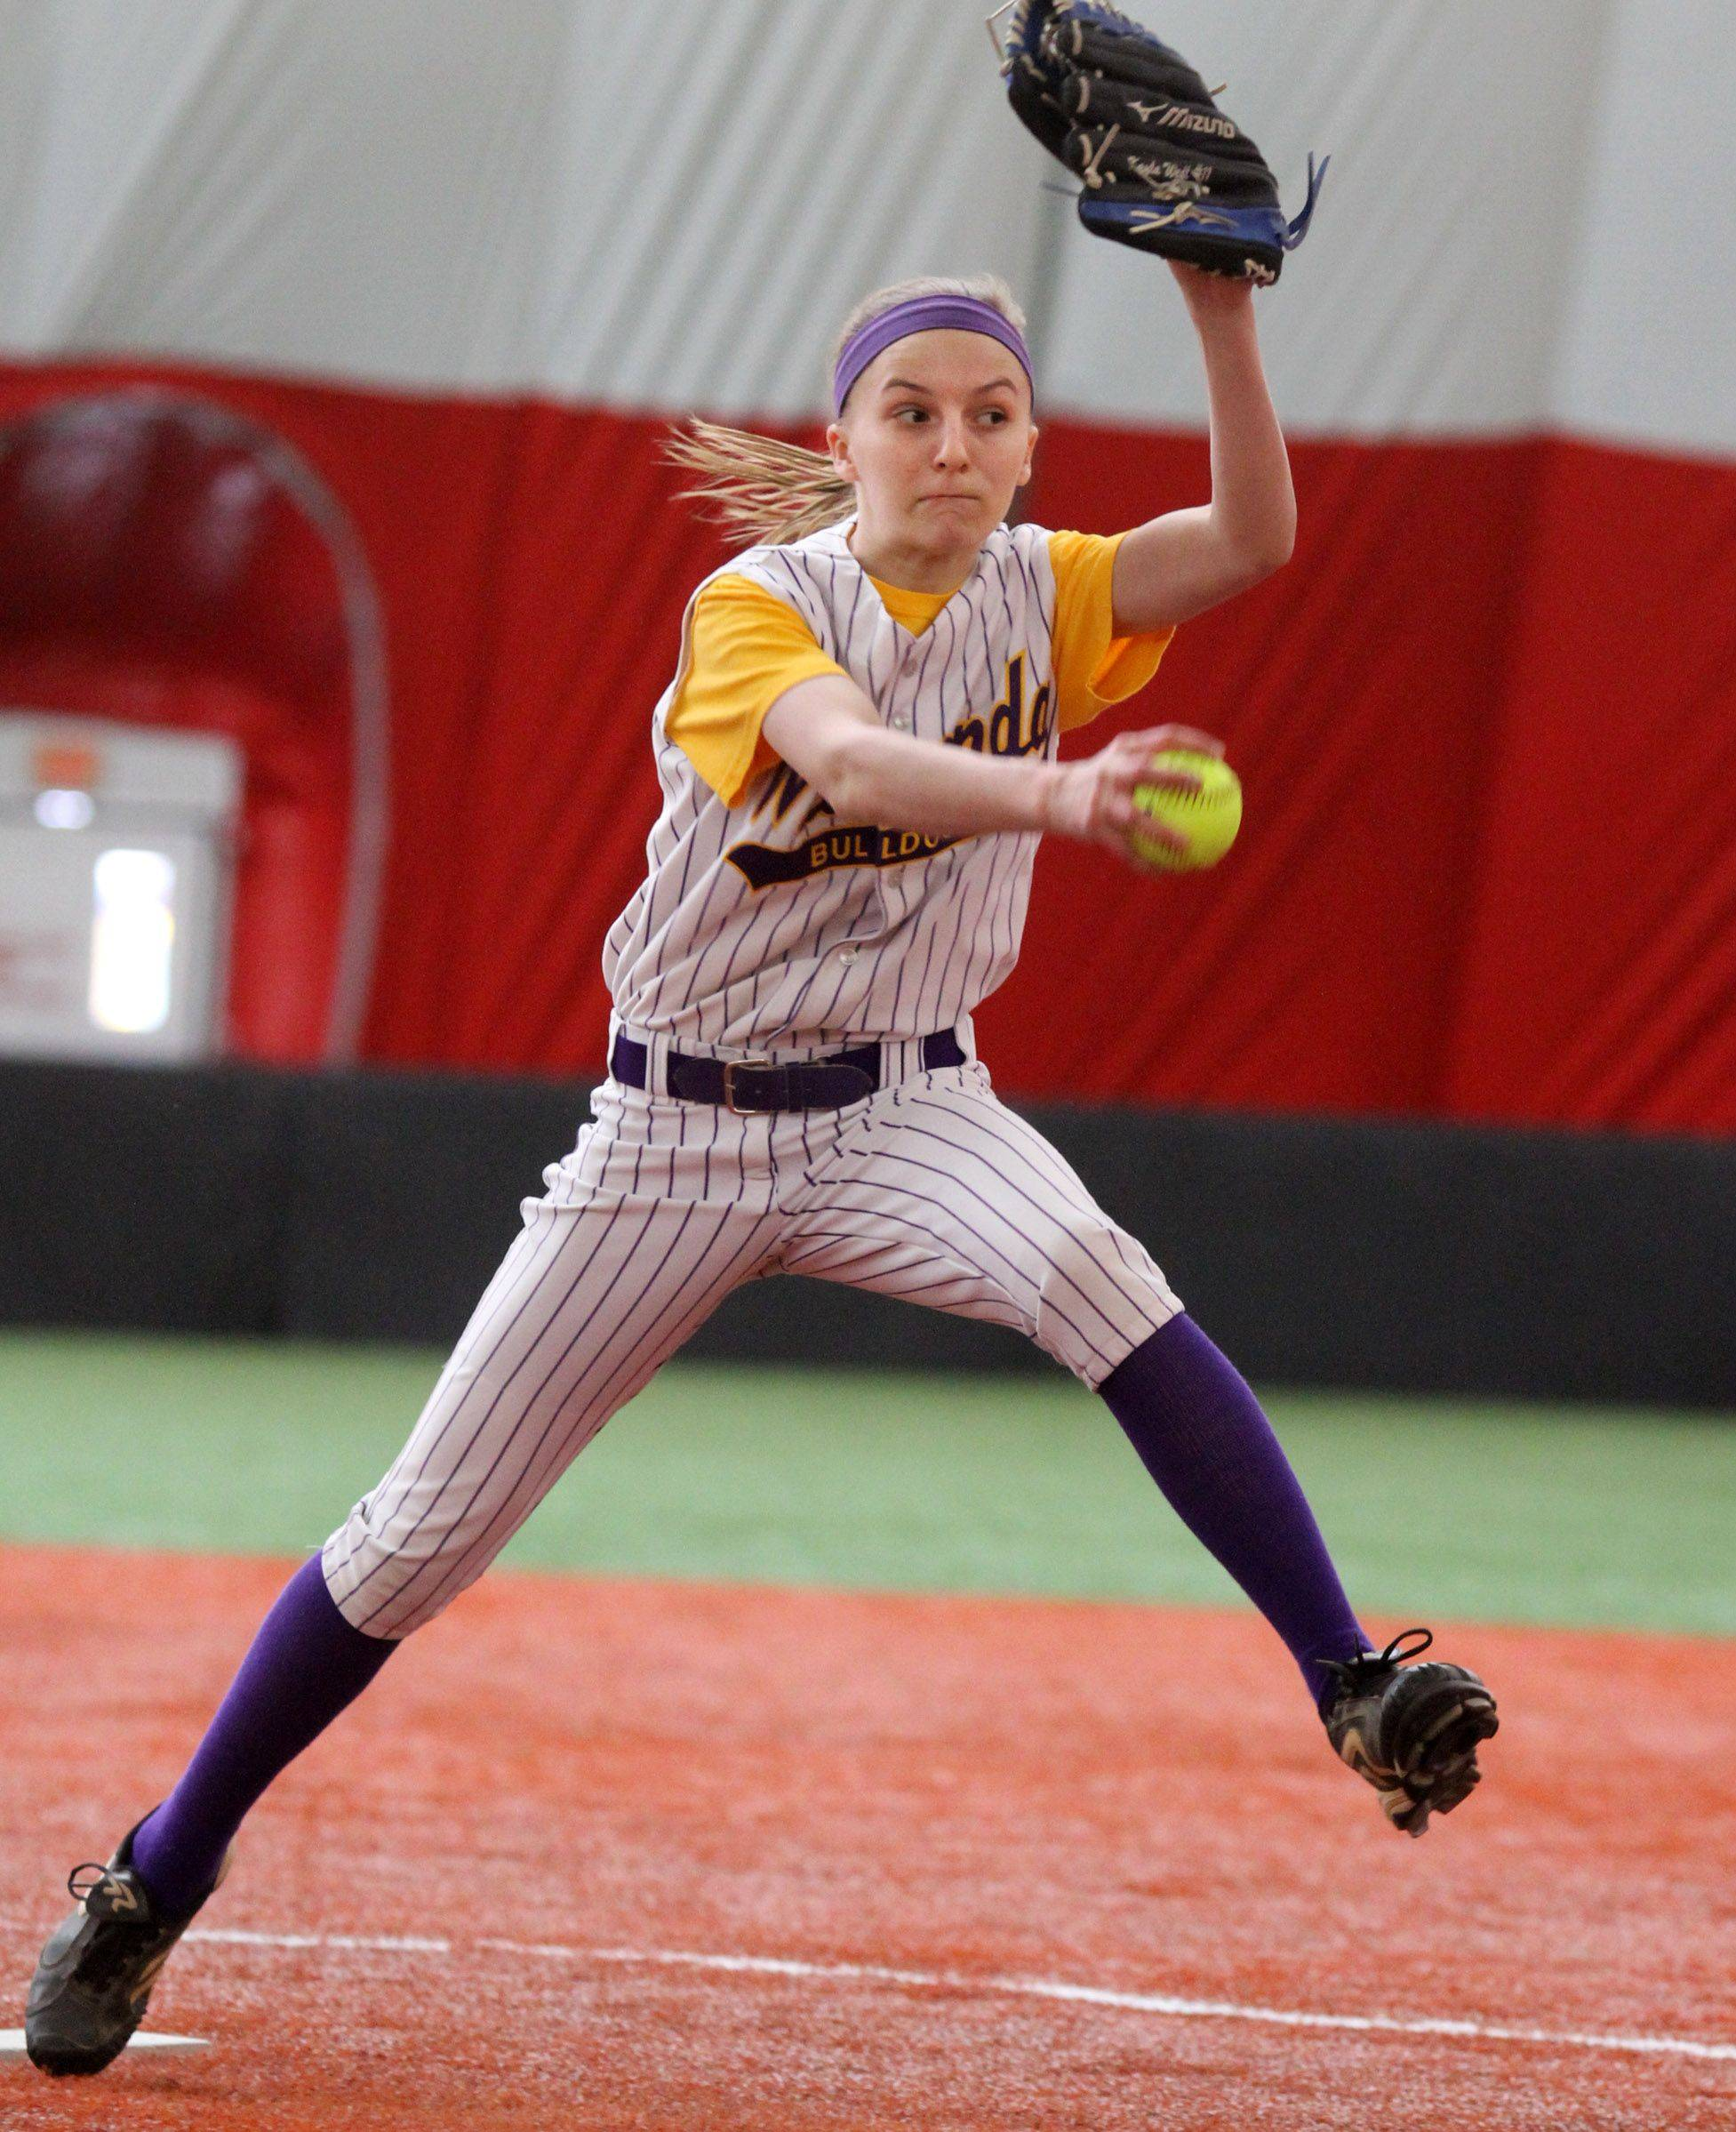 Wauconda freshman pitcher Kayla Wedl worked 7 innings against Marengo with 4 strikeouts.